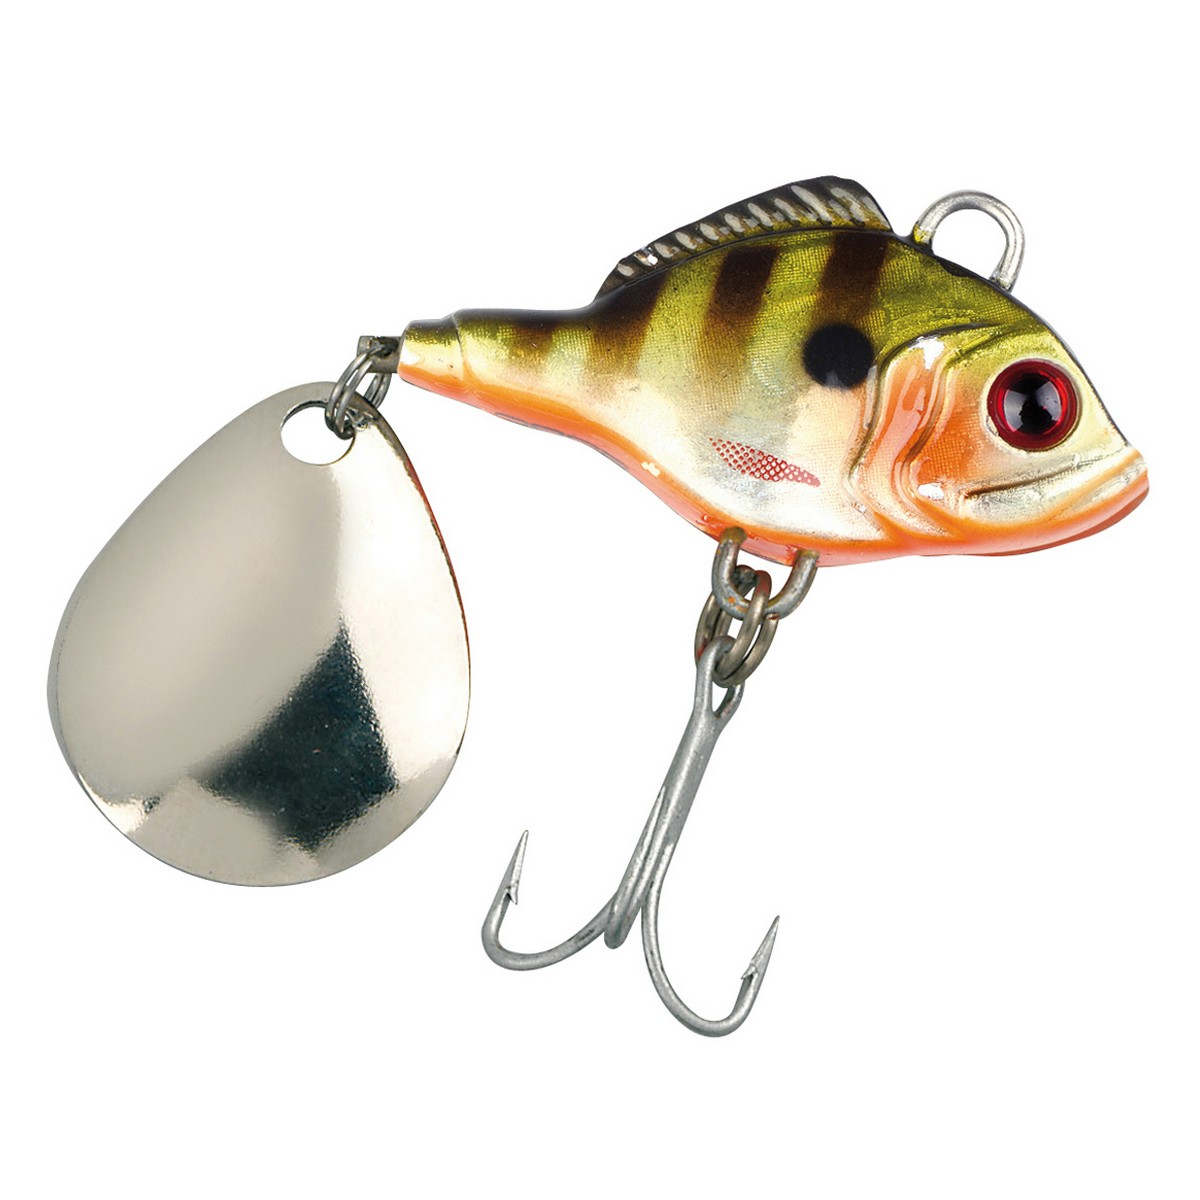 SPRO ASP Jiggin' Spinner Met. Perch